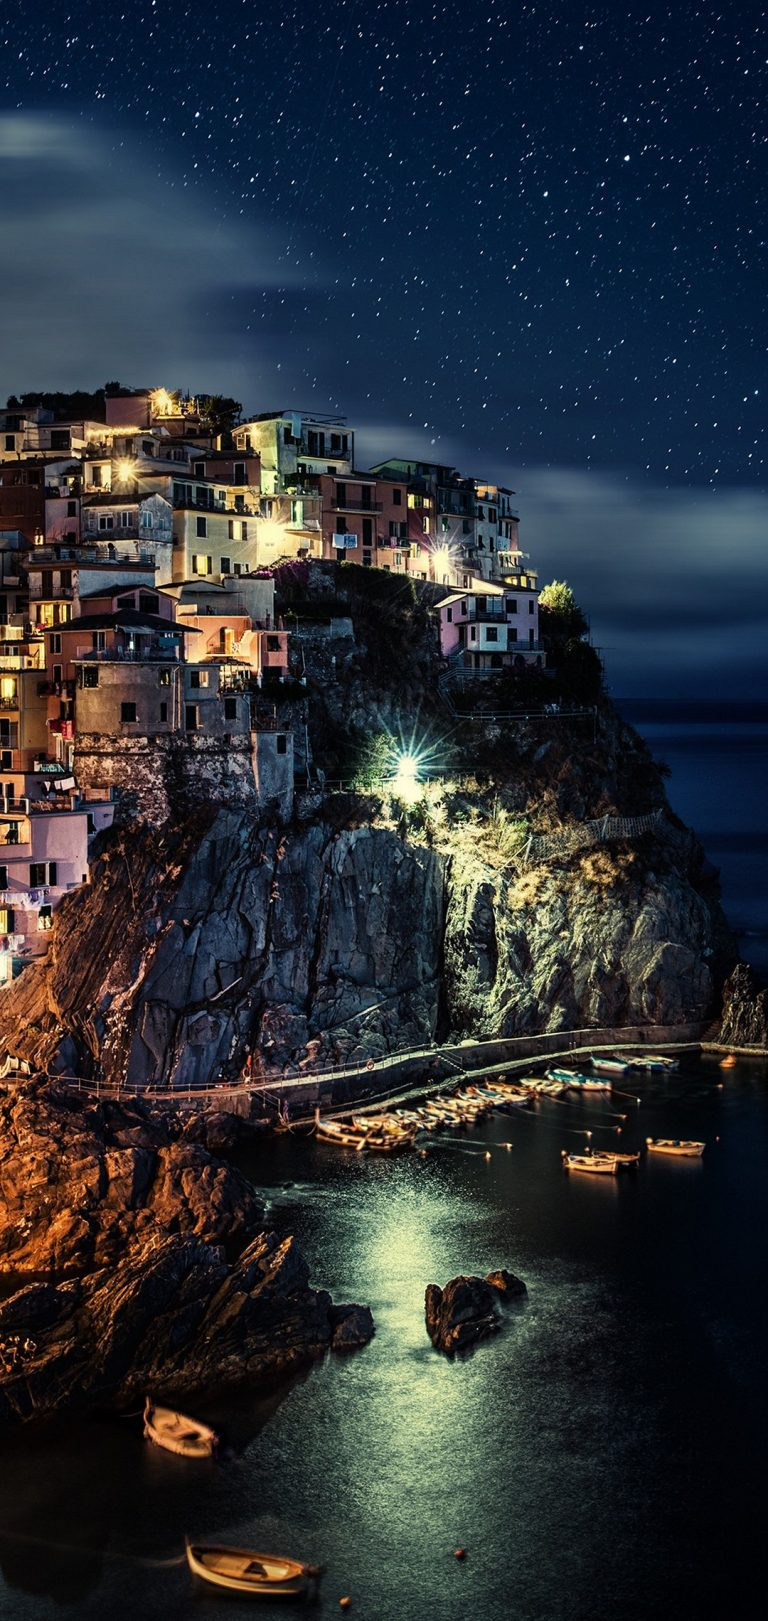 Manarola Wallpaper 1080x2280 768x1621